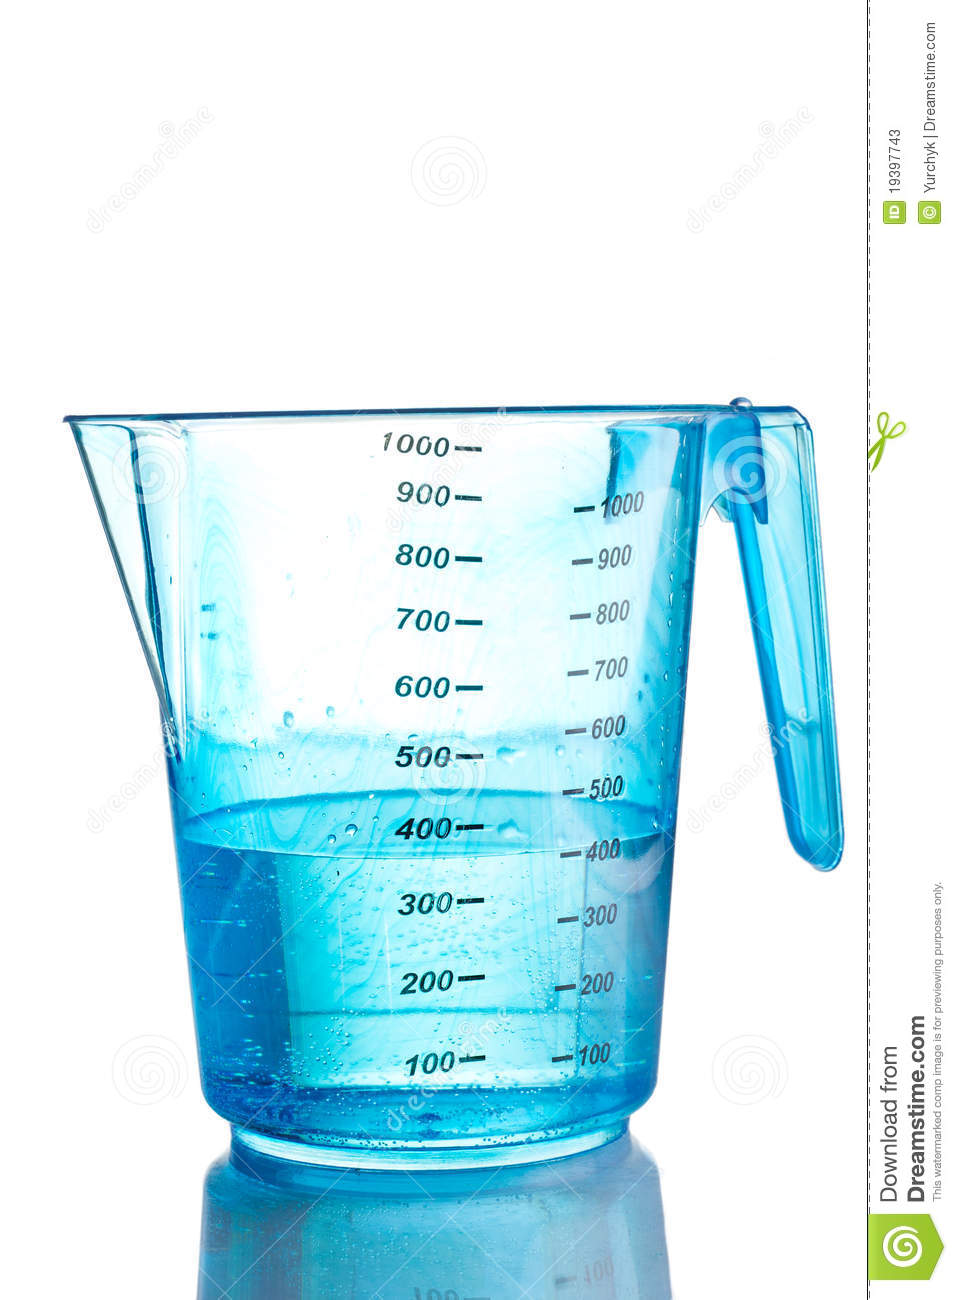 Photo About Blue Measuring Cup Filled With Water Isolated Image Of Level Nobody Number 19397743 Measuring Cups Cup Filling